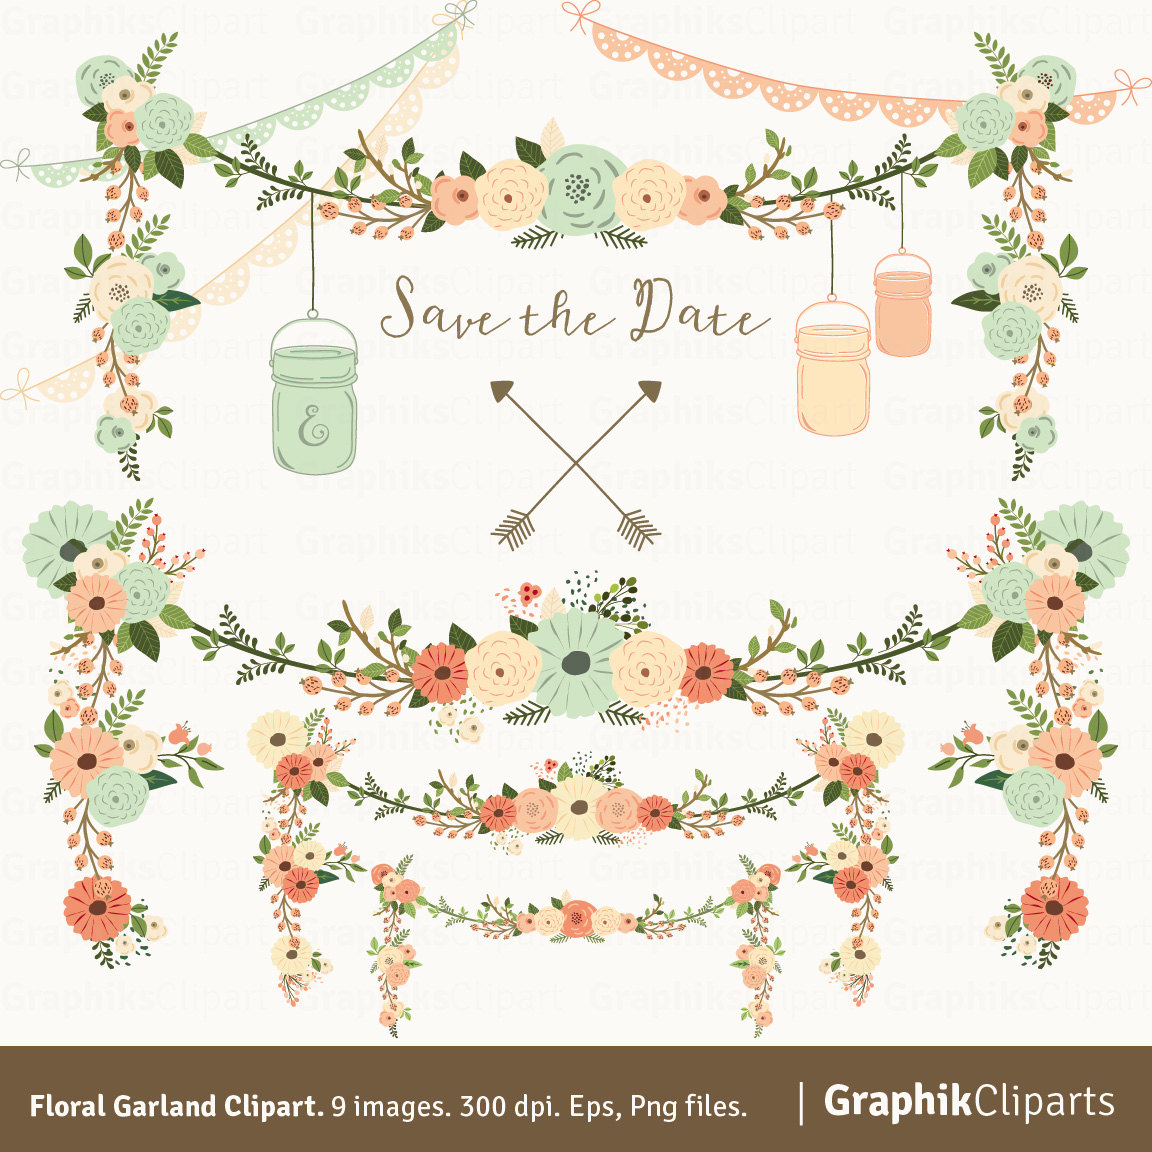 Pink Flower clipart flower garland Floral Floral GARLAND this Like